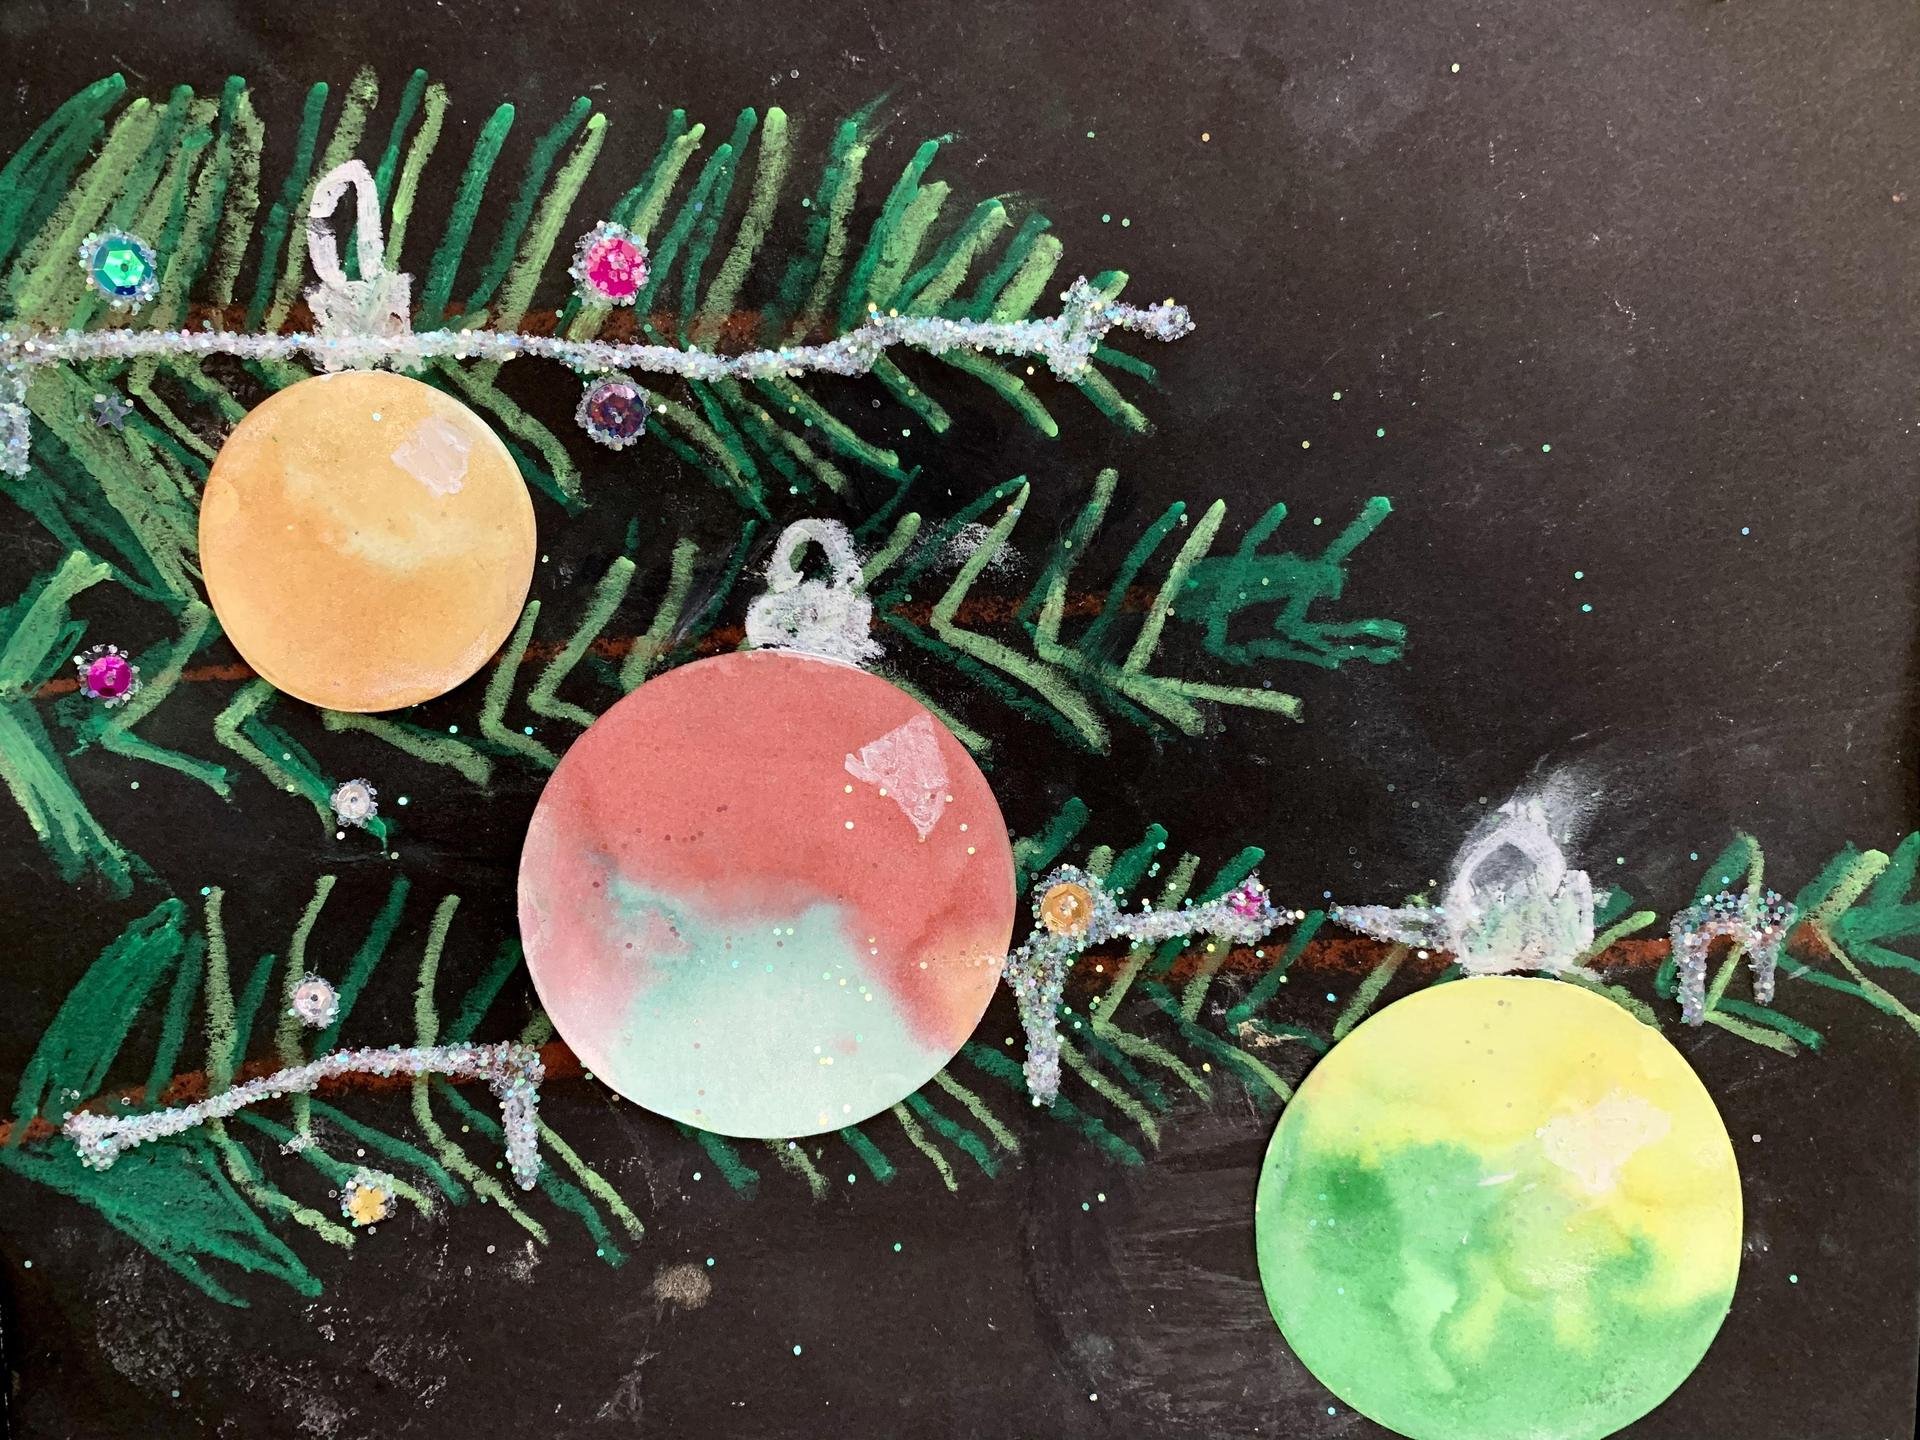 Pine Tree with Ornament 5